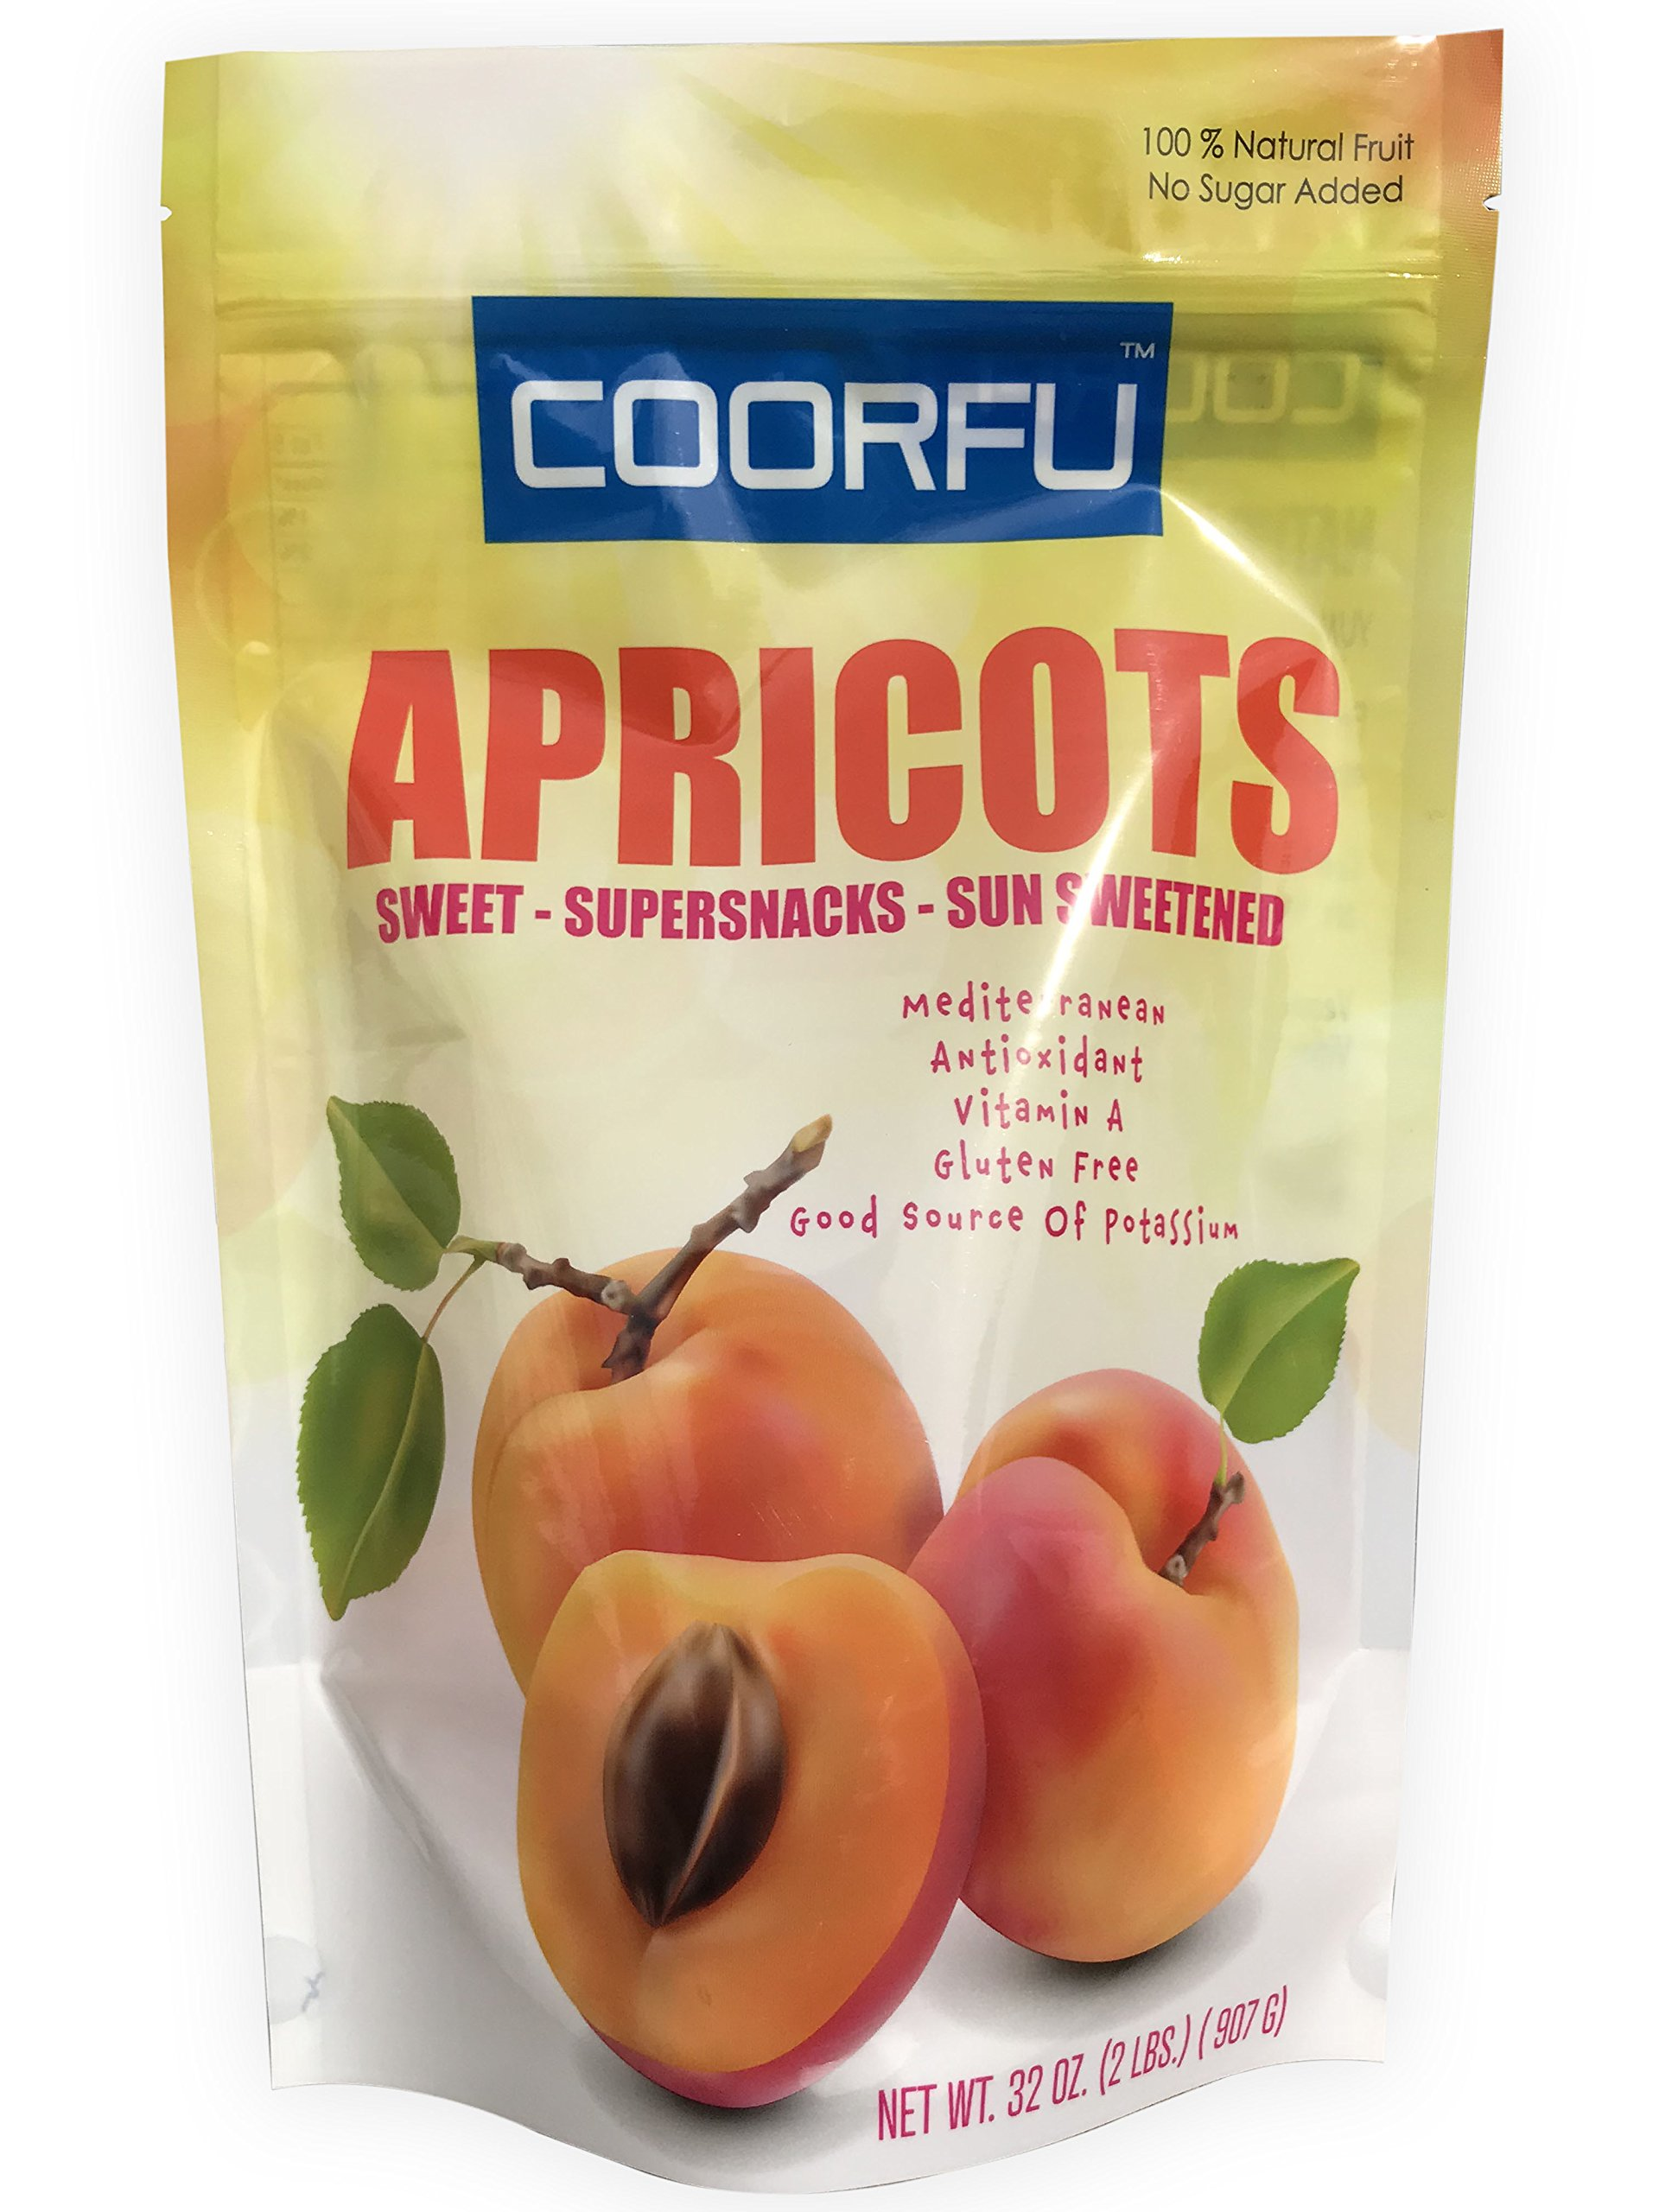 Coorfu Dried Turkish Apricots in Resealable Bag, Jumbo Size, 2 Lbs. (32 oz )